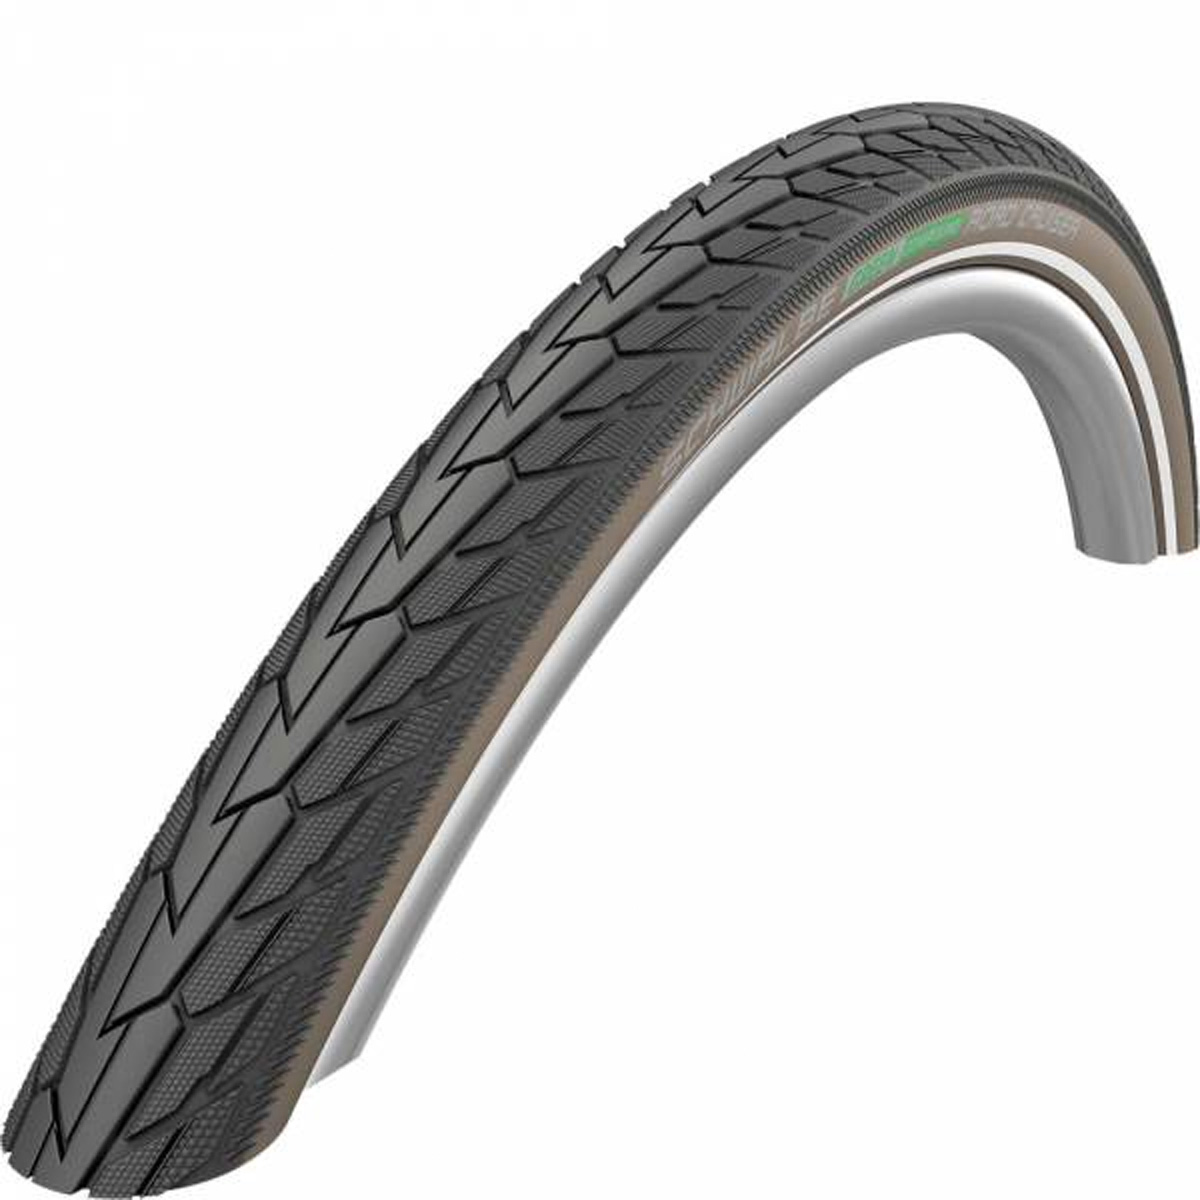 Schwalbe Road Cruiser HS 484 Mountain Bicycle Tire - Wire Bead -